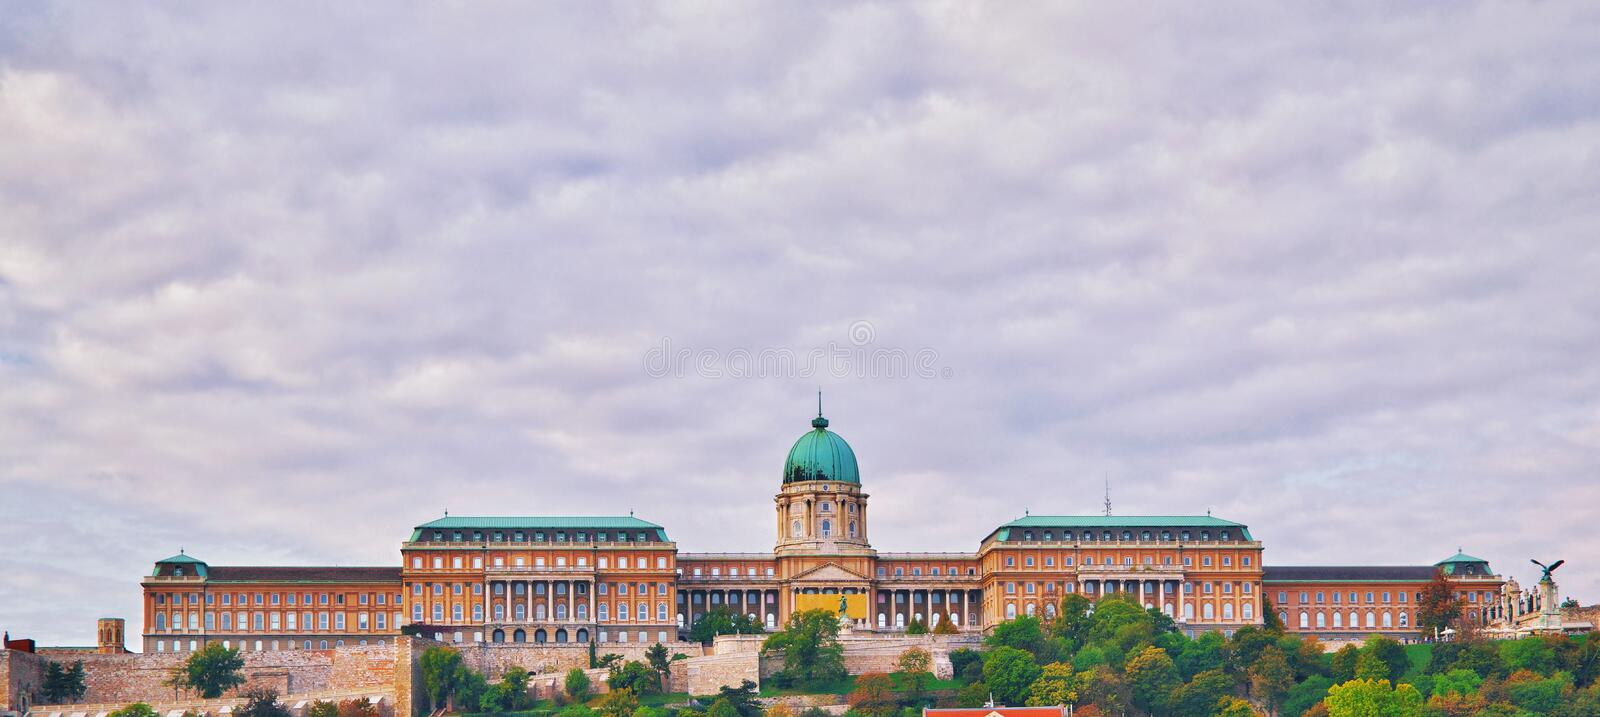 View from danube river of Buda Castle Royal Palace on Hill. Budapest Royal King Castle and palace complex skyline at stock image